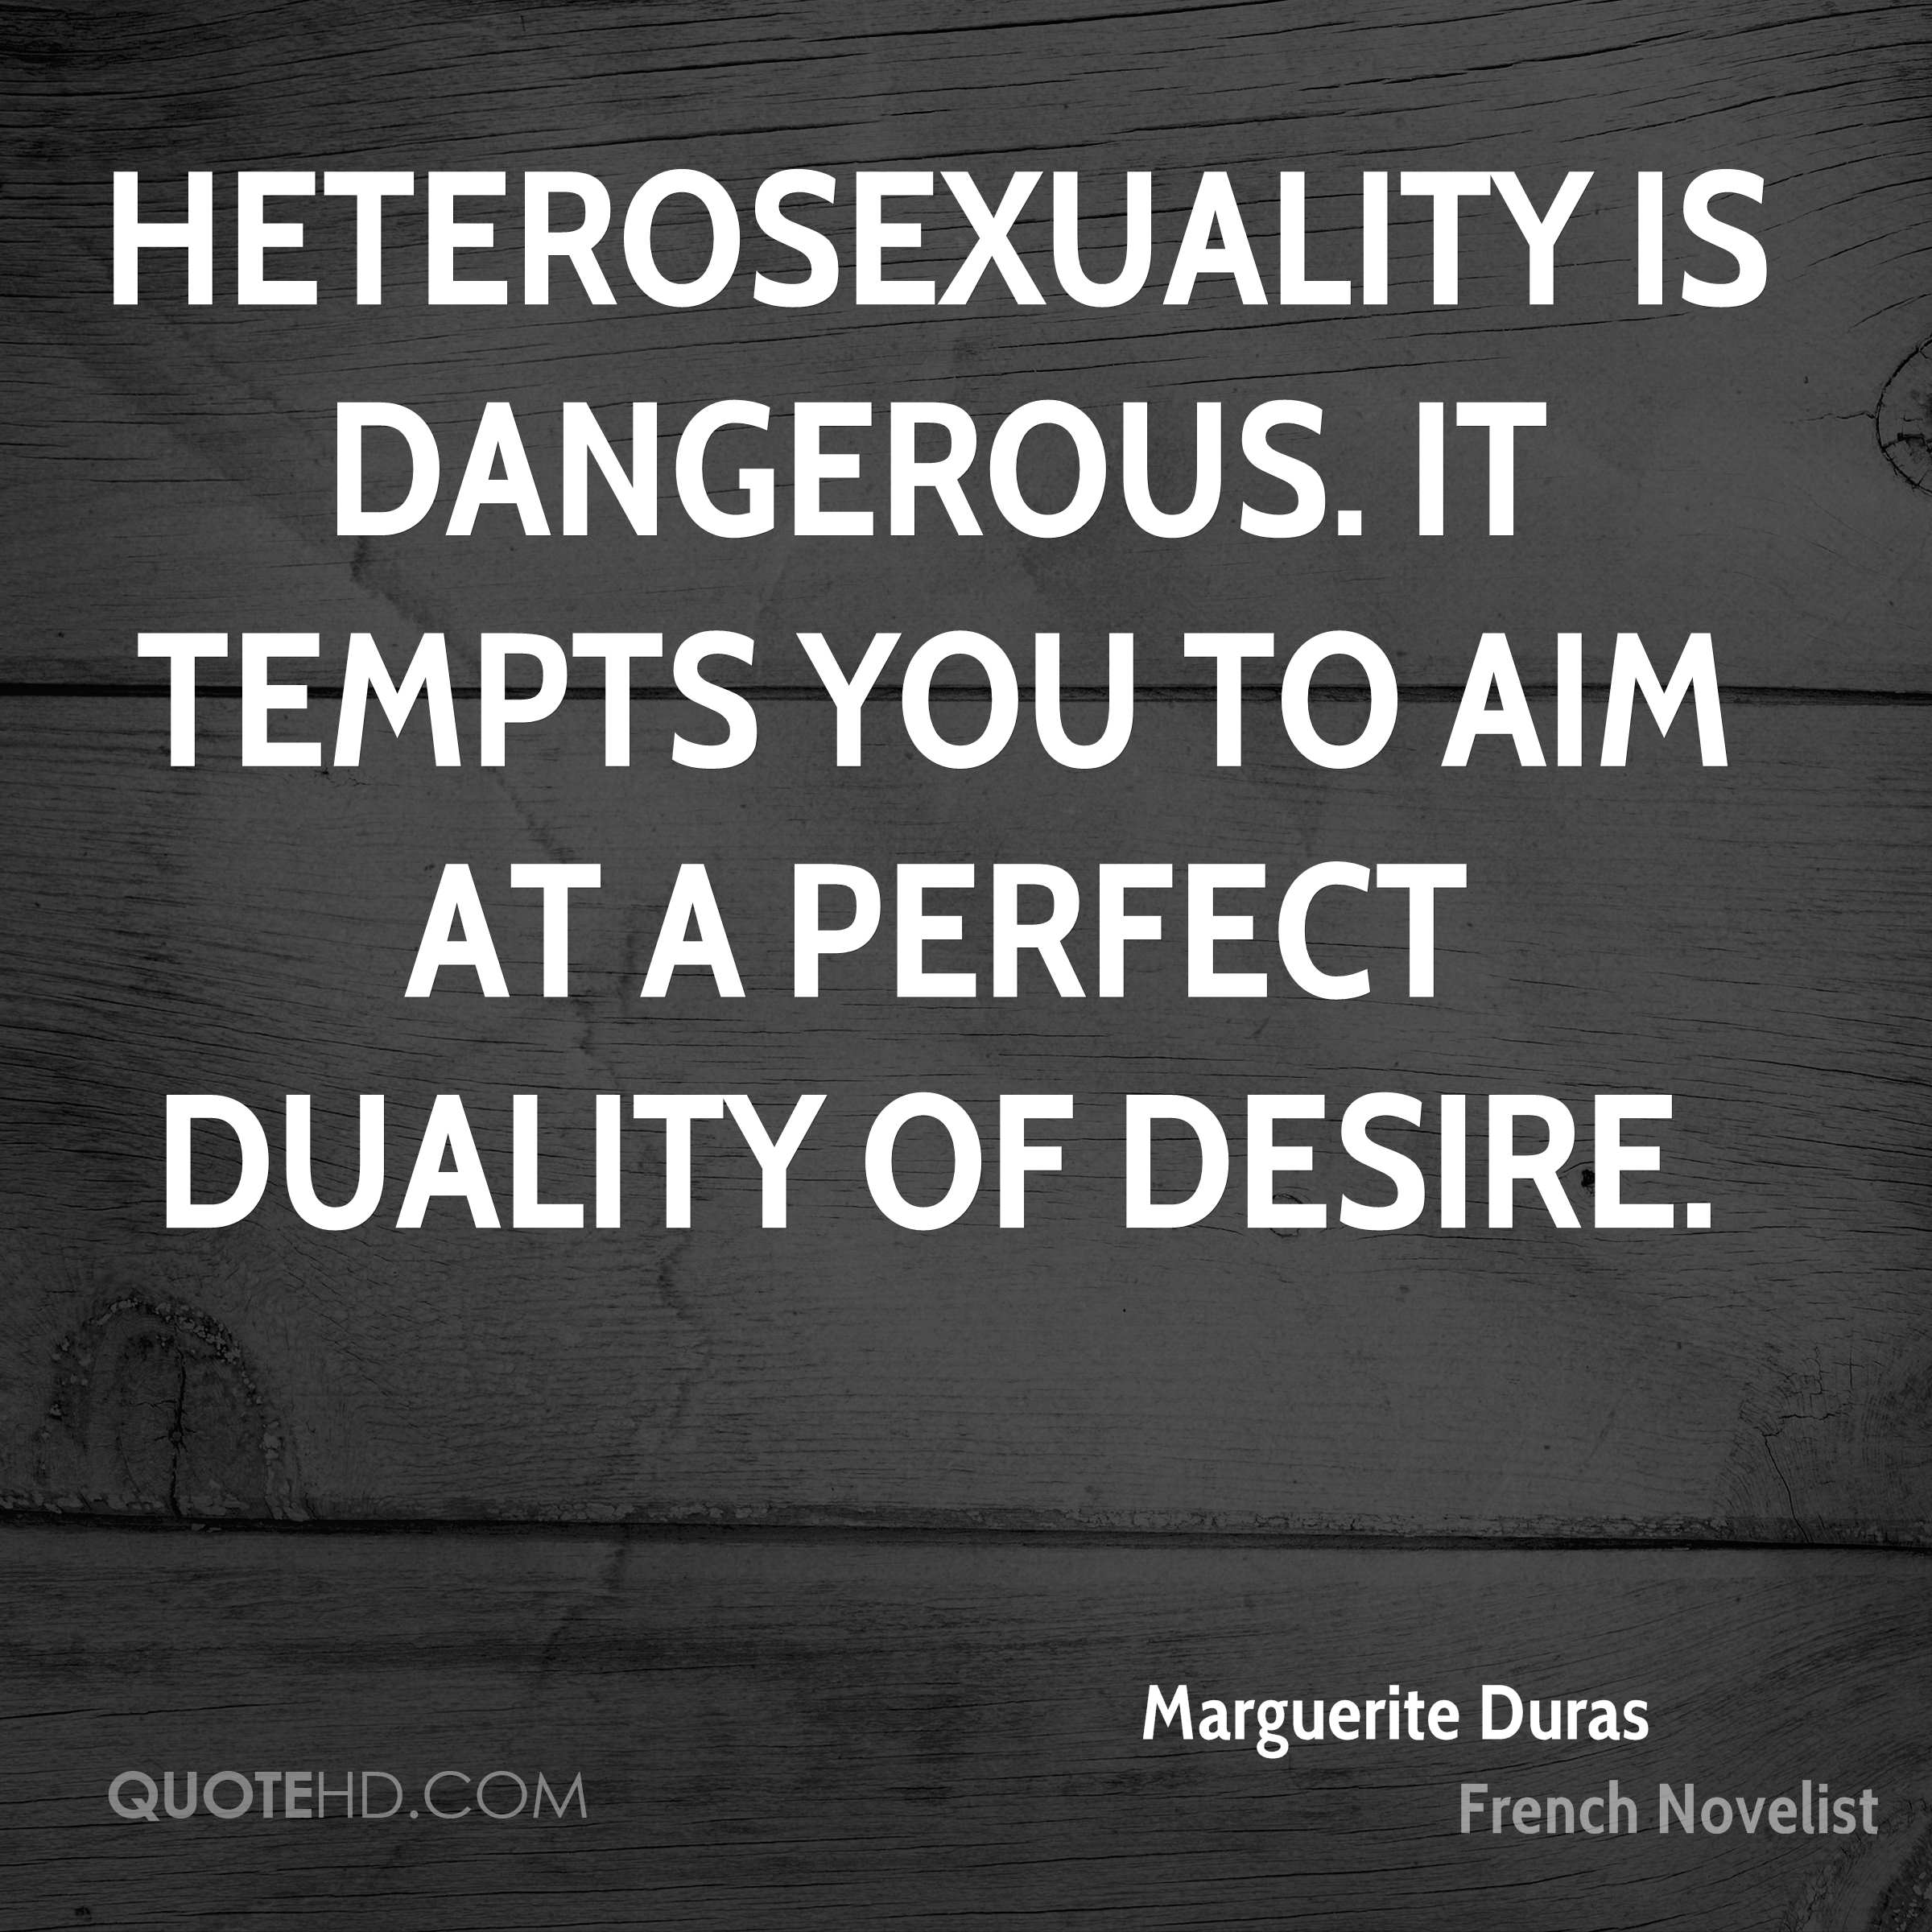 Heterosexuality is dangerous. It tempts you to aim at a perfect duality of desire.